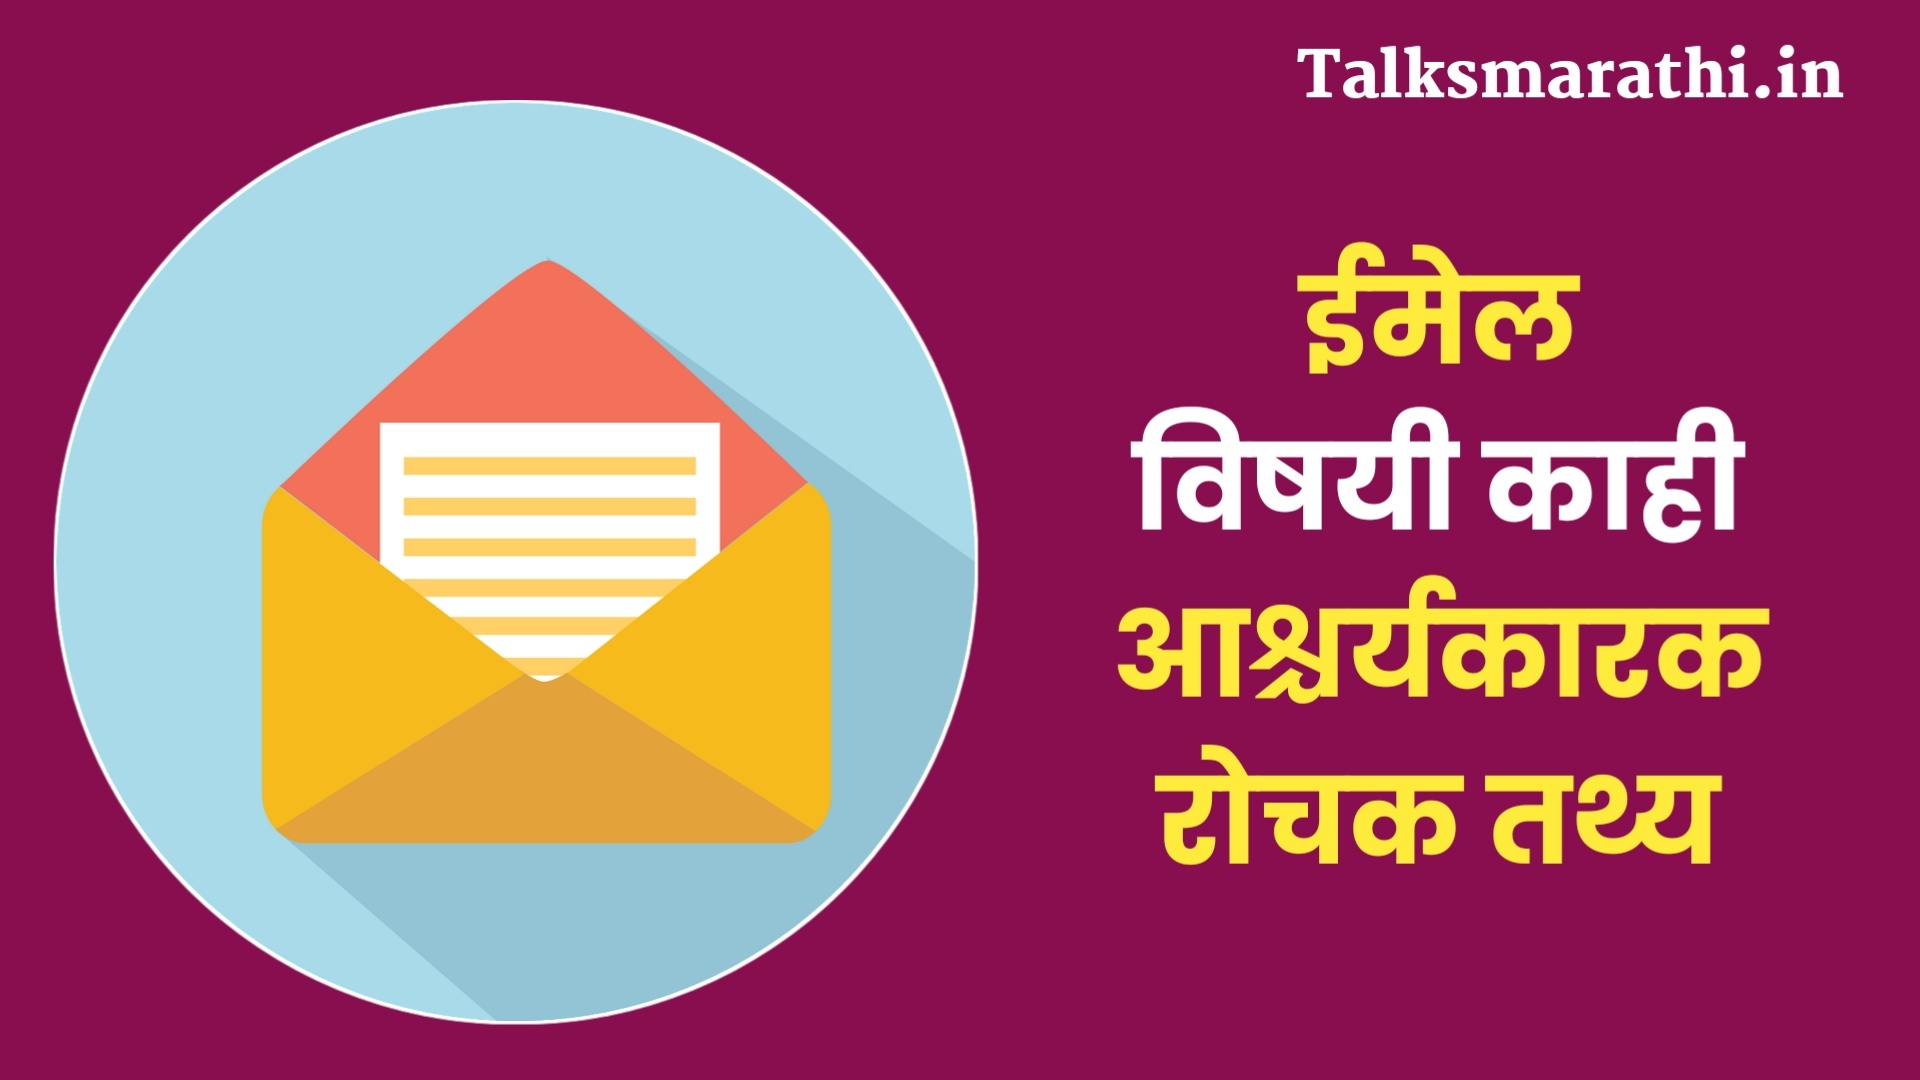 Intresting facts about email in Marathi